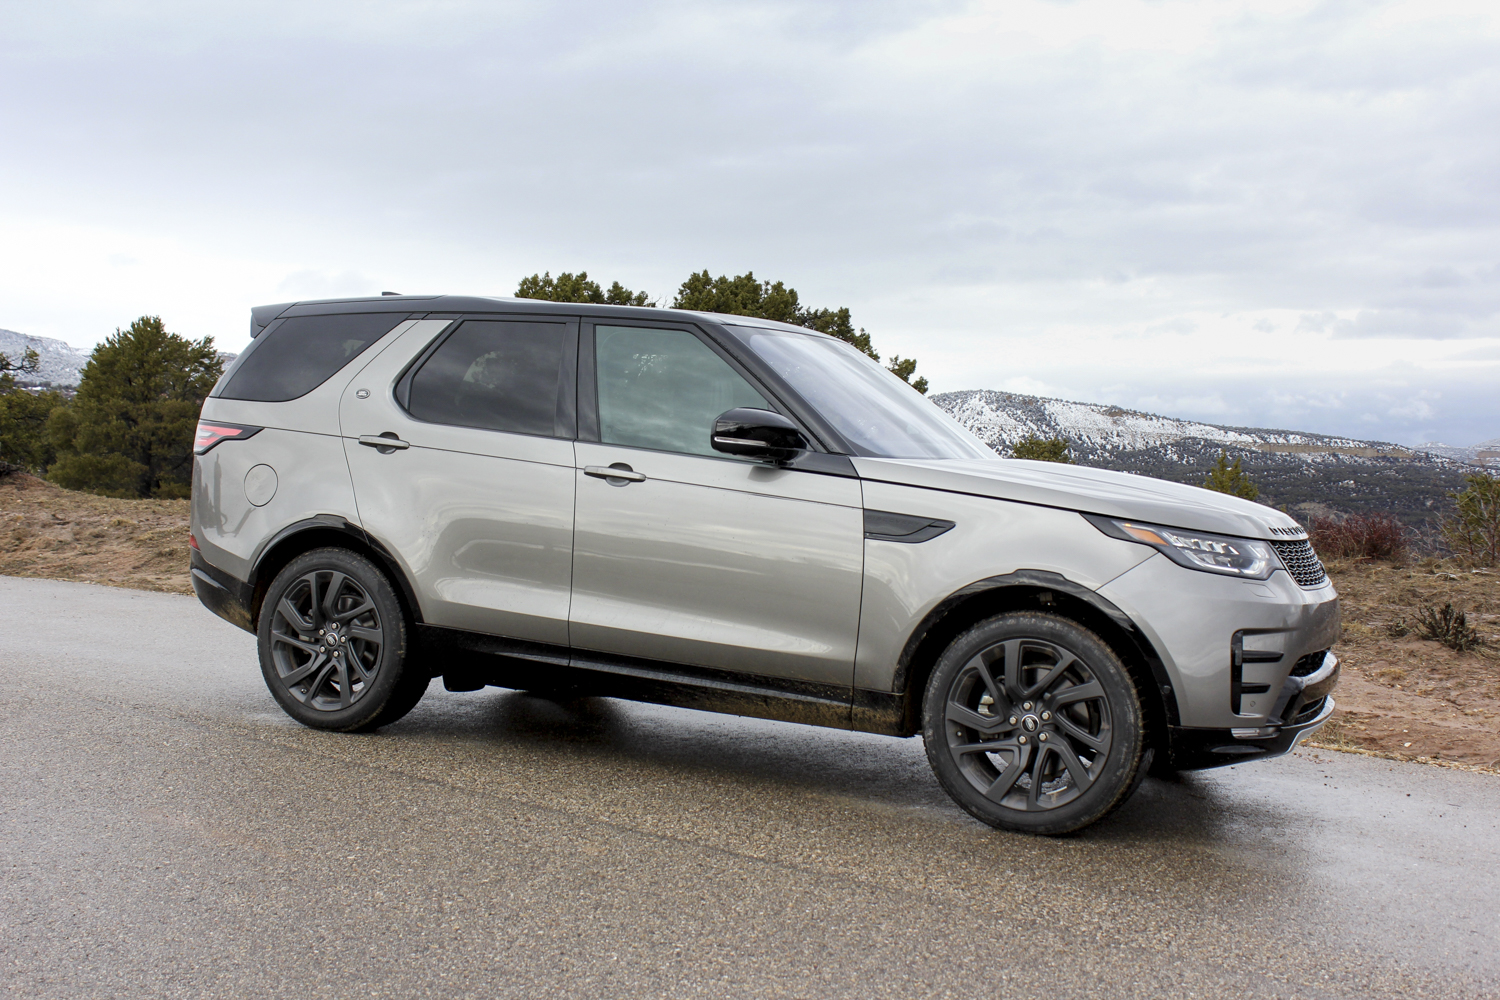 2017 land rover discovery first drive review digital trends. Black Bedroom Furniture Sets. Home Design Ideas